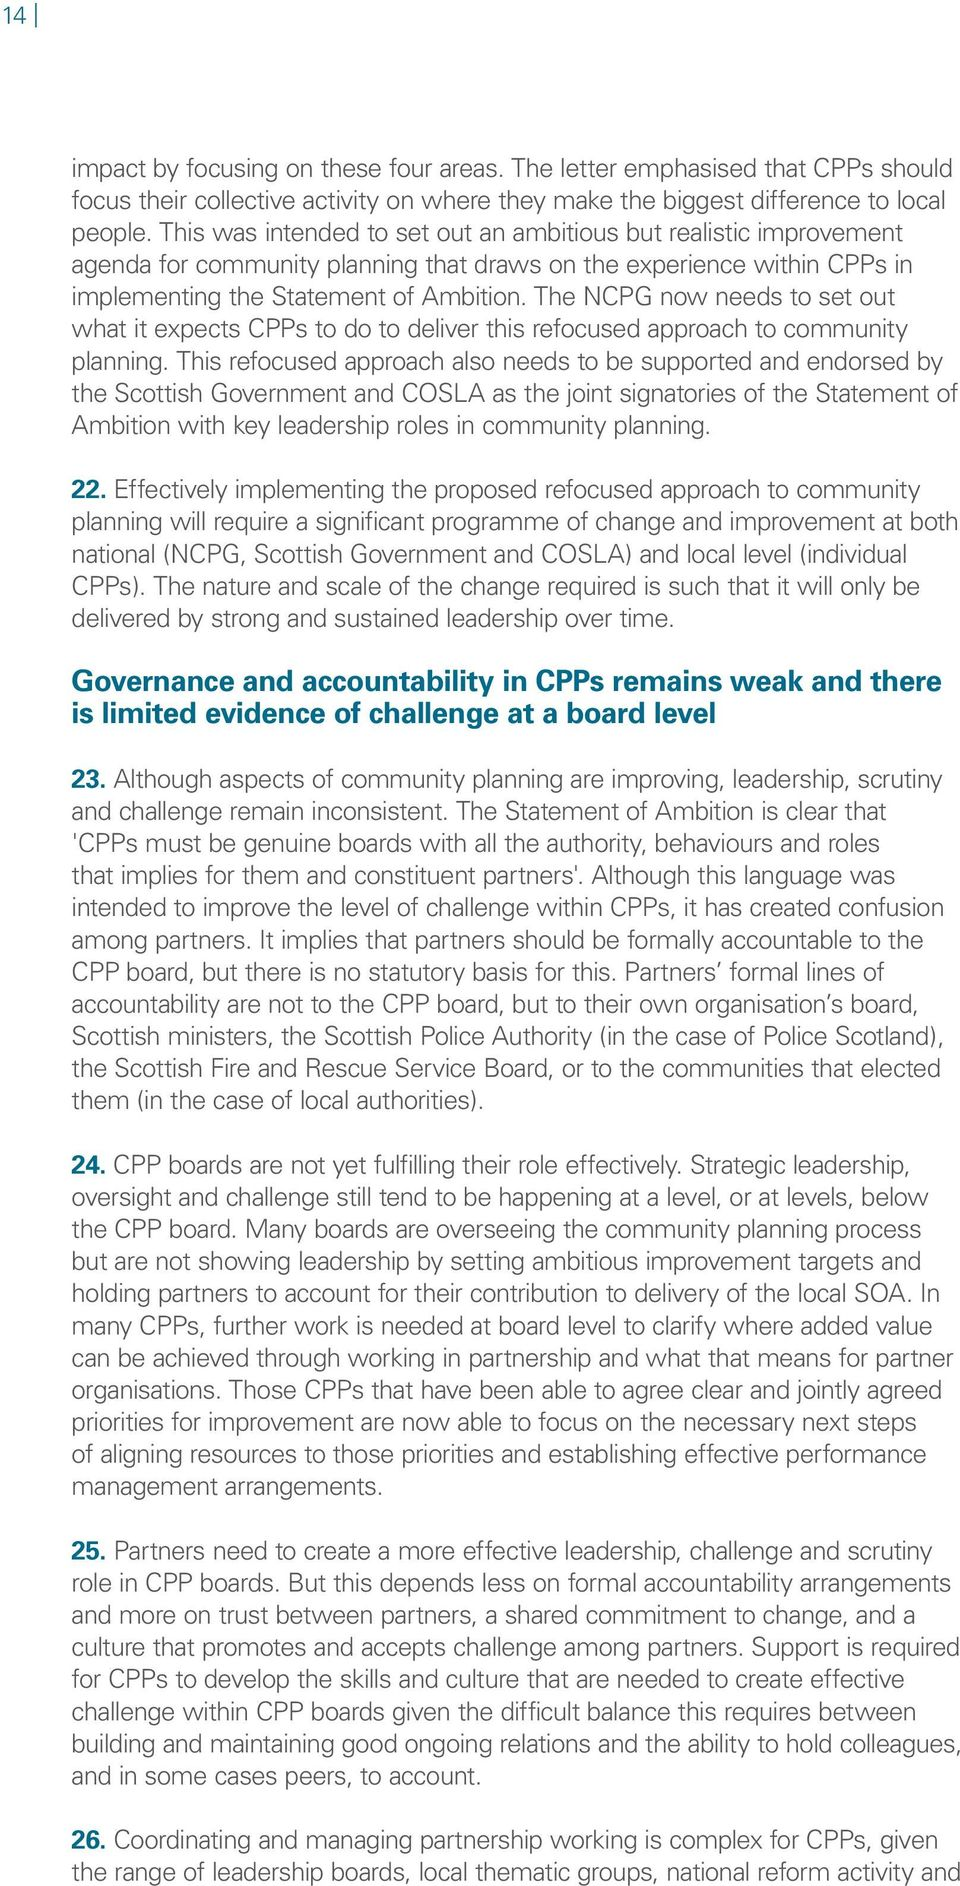 The NCPG now needs to set out what it expects CPPs to do to deliver this refocused approach to community planning.